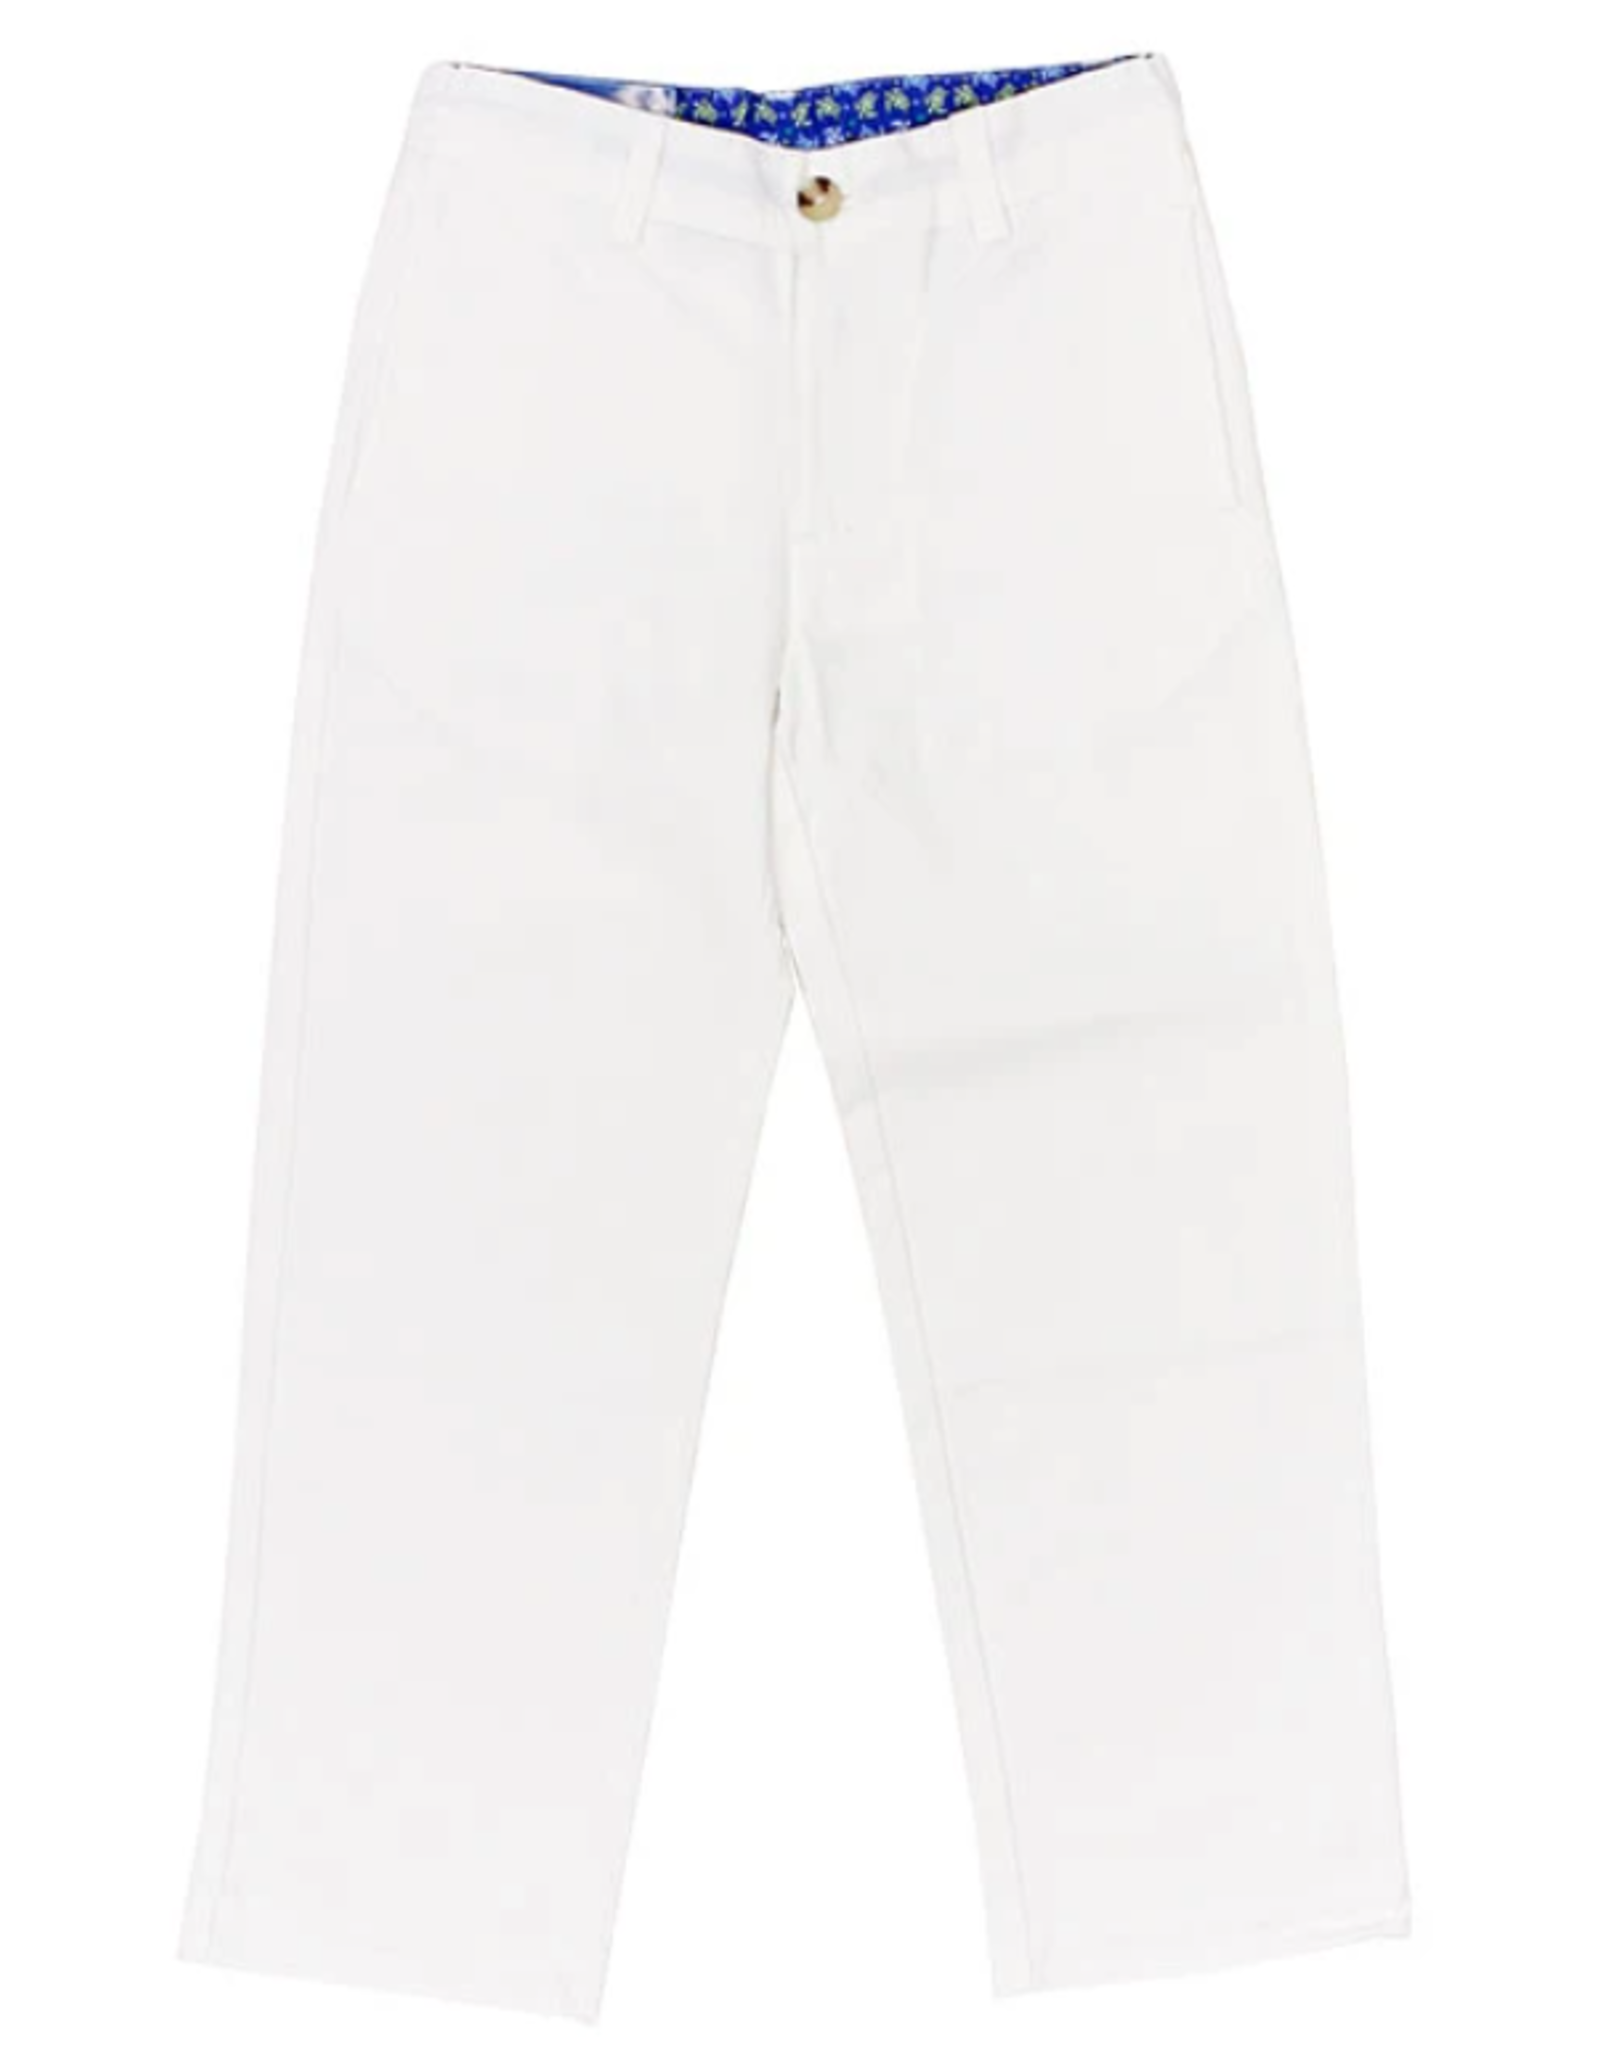 The Bailey Boys Champ Pants White Twill